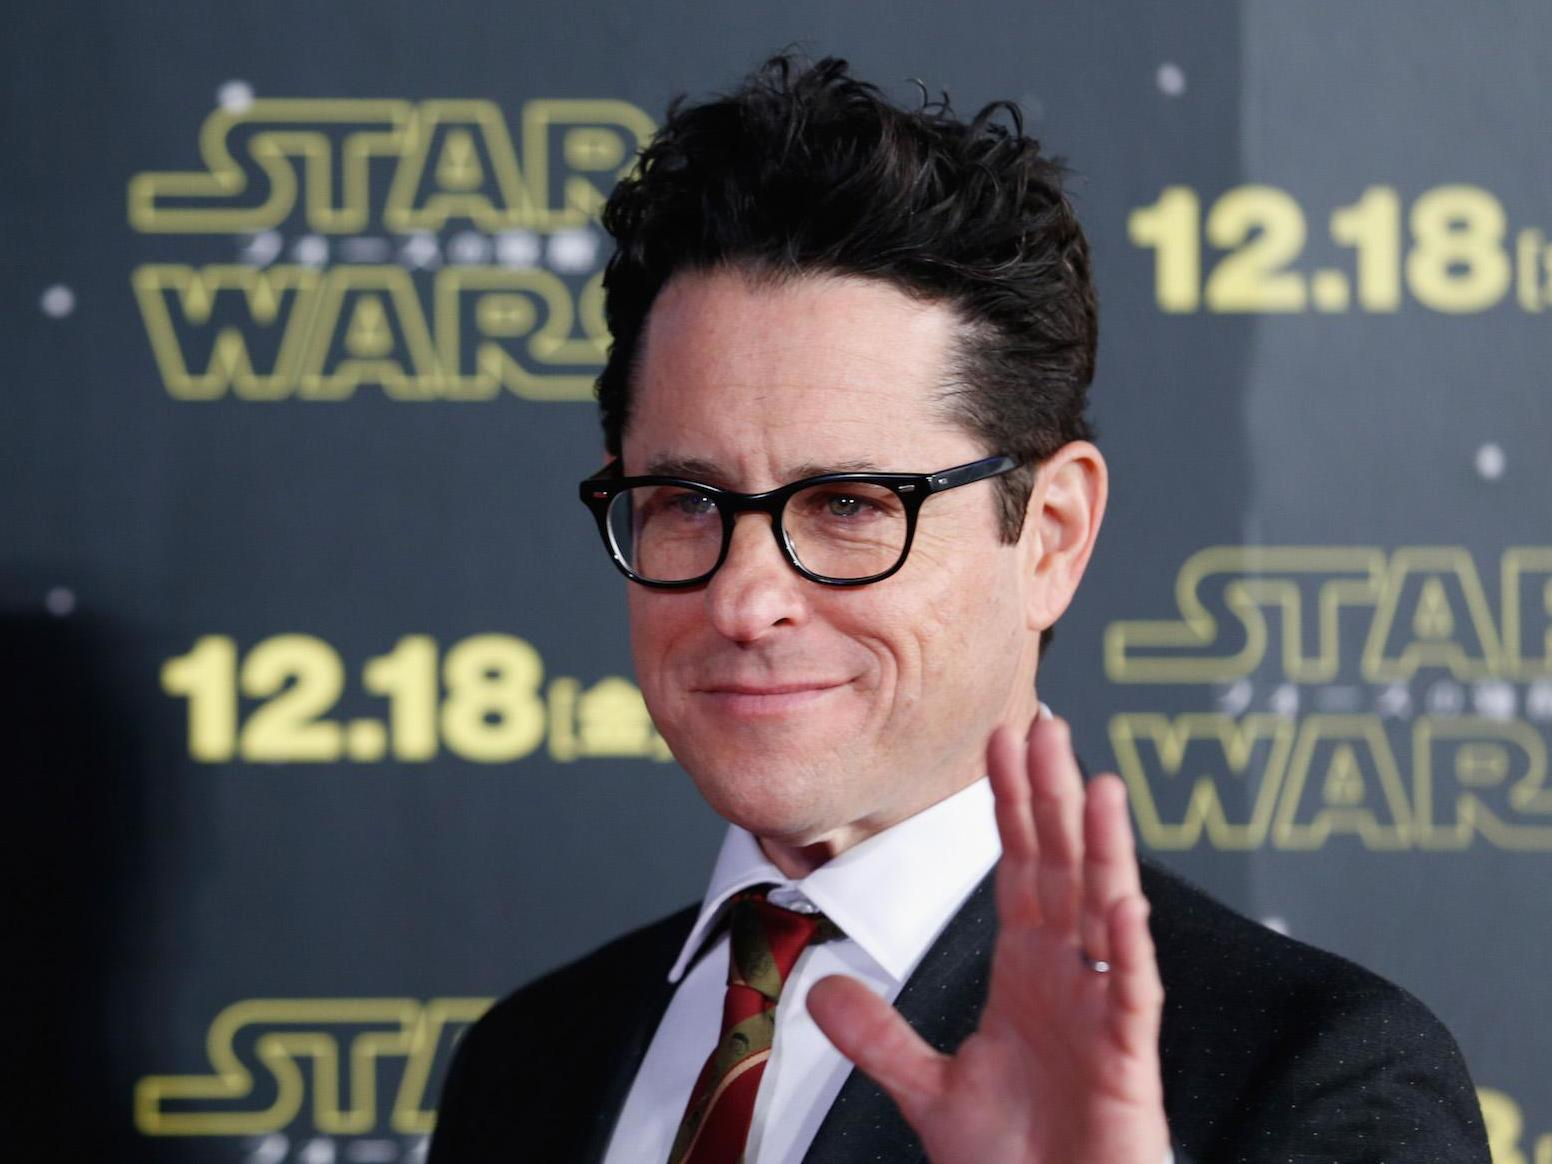 Star Wars director JJ Abrams has surprise response to negative Rise of Skywalker reviews: 'They're right'